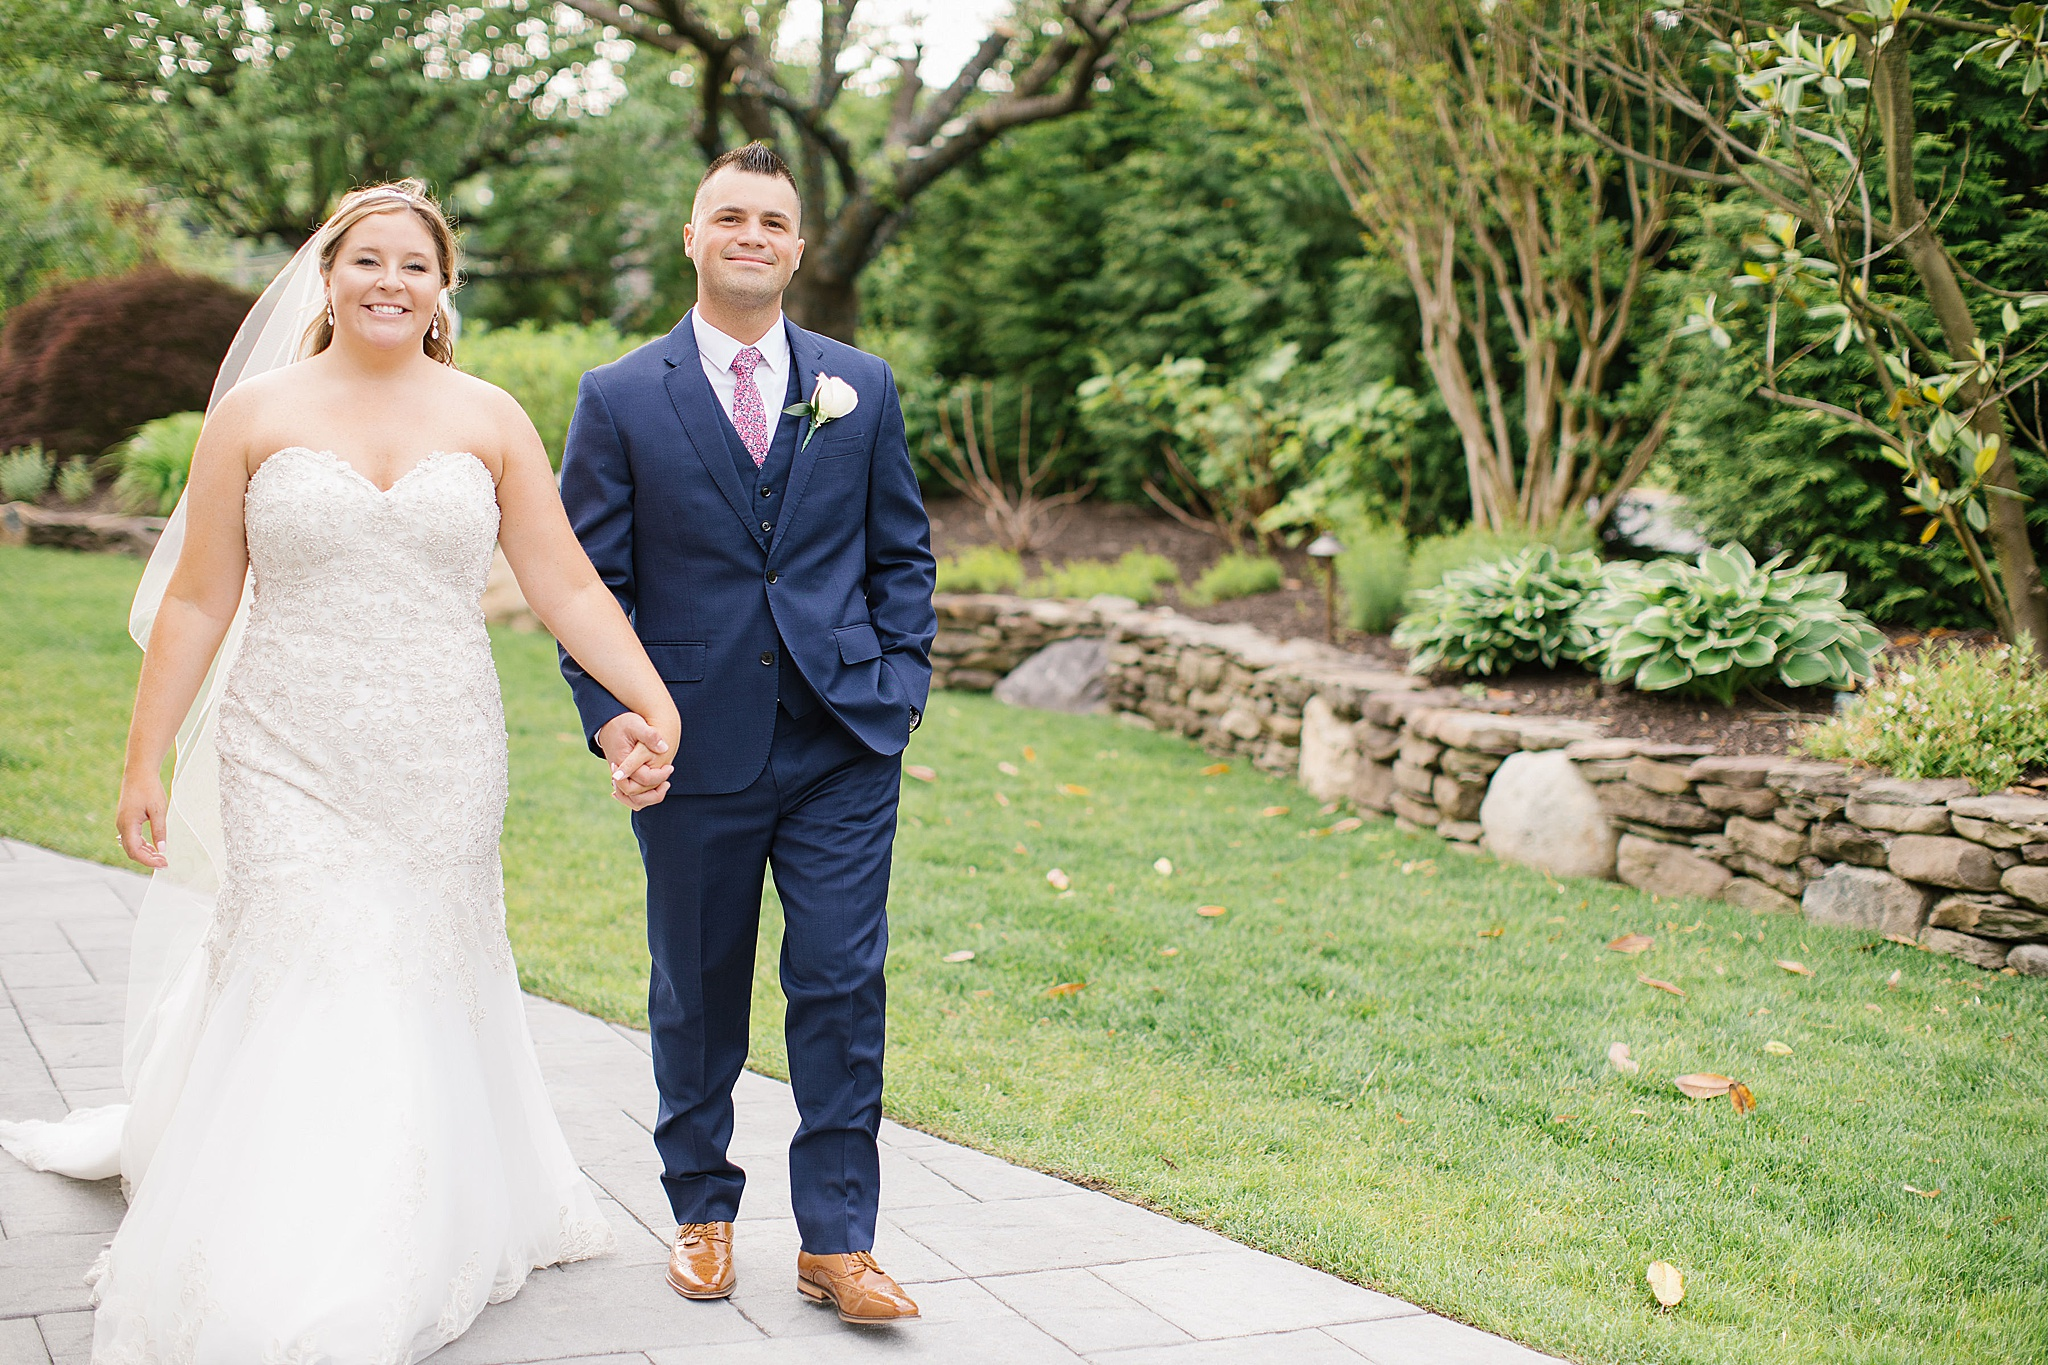 Ashley Mac Photographs | The Mansion at Mountain Lakes | Mountain Lakes NJ wedding | NJ wedding photographer | New Jersey wedding day | New Jersey wedding photographer | Mountain Lake New Jersey wedding | Mountain Lakes | classic wedding